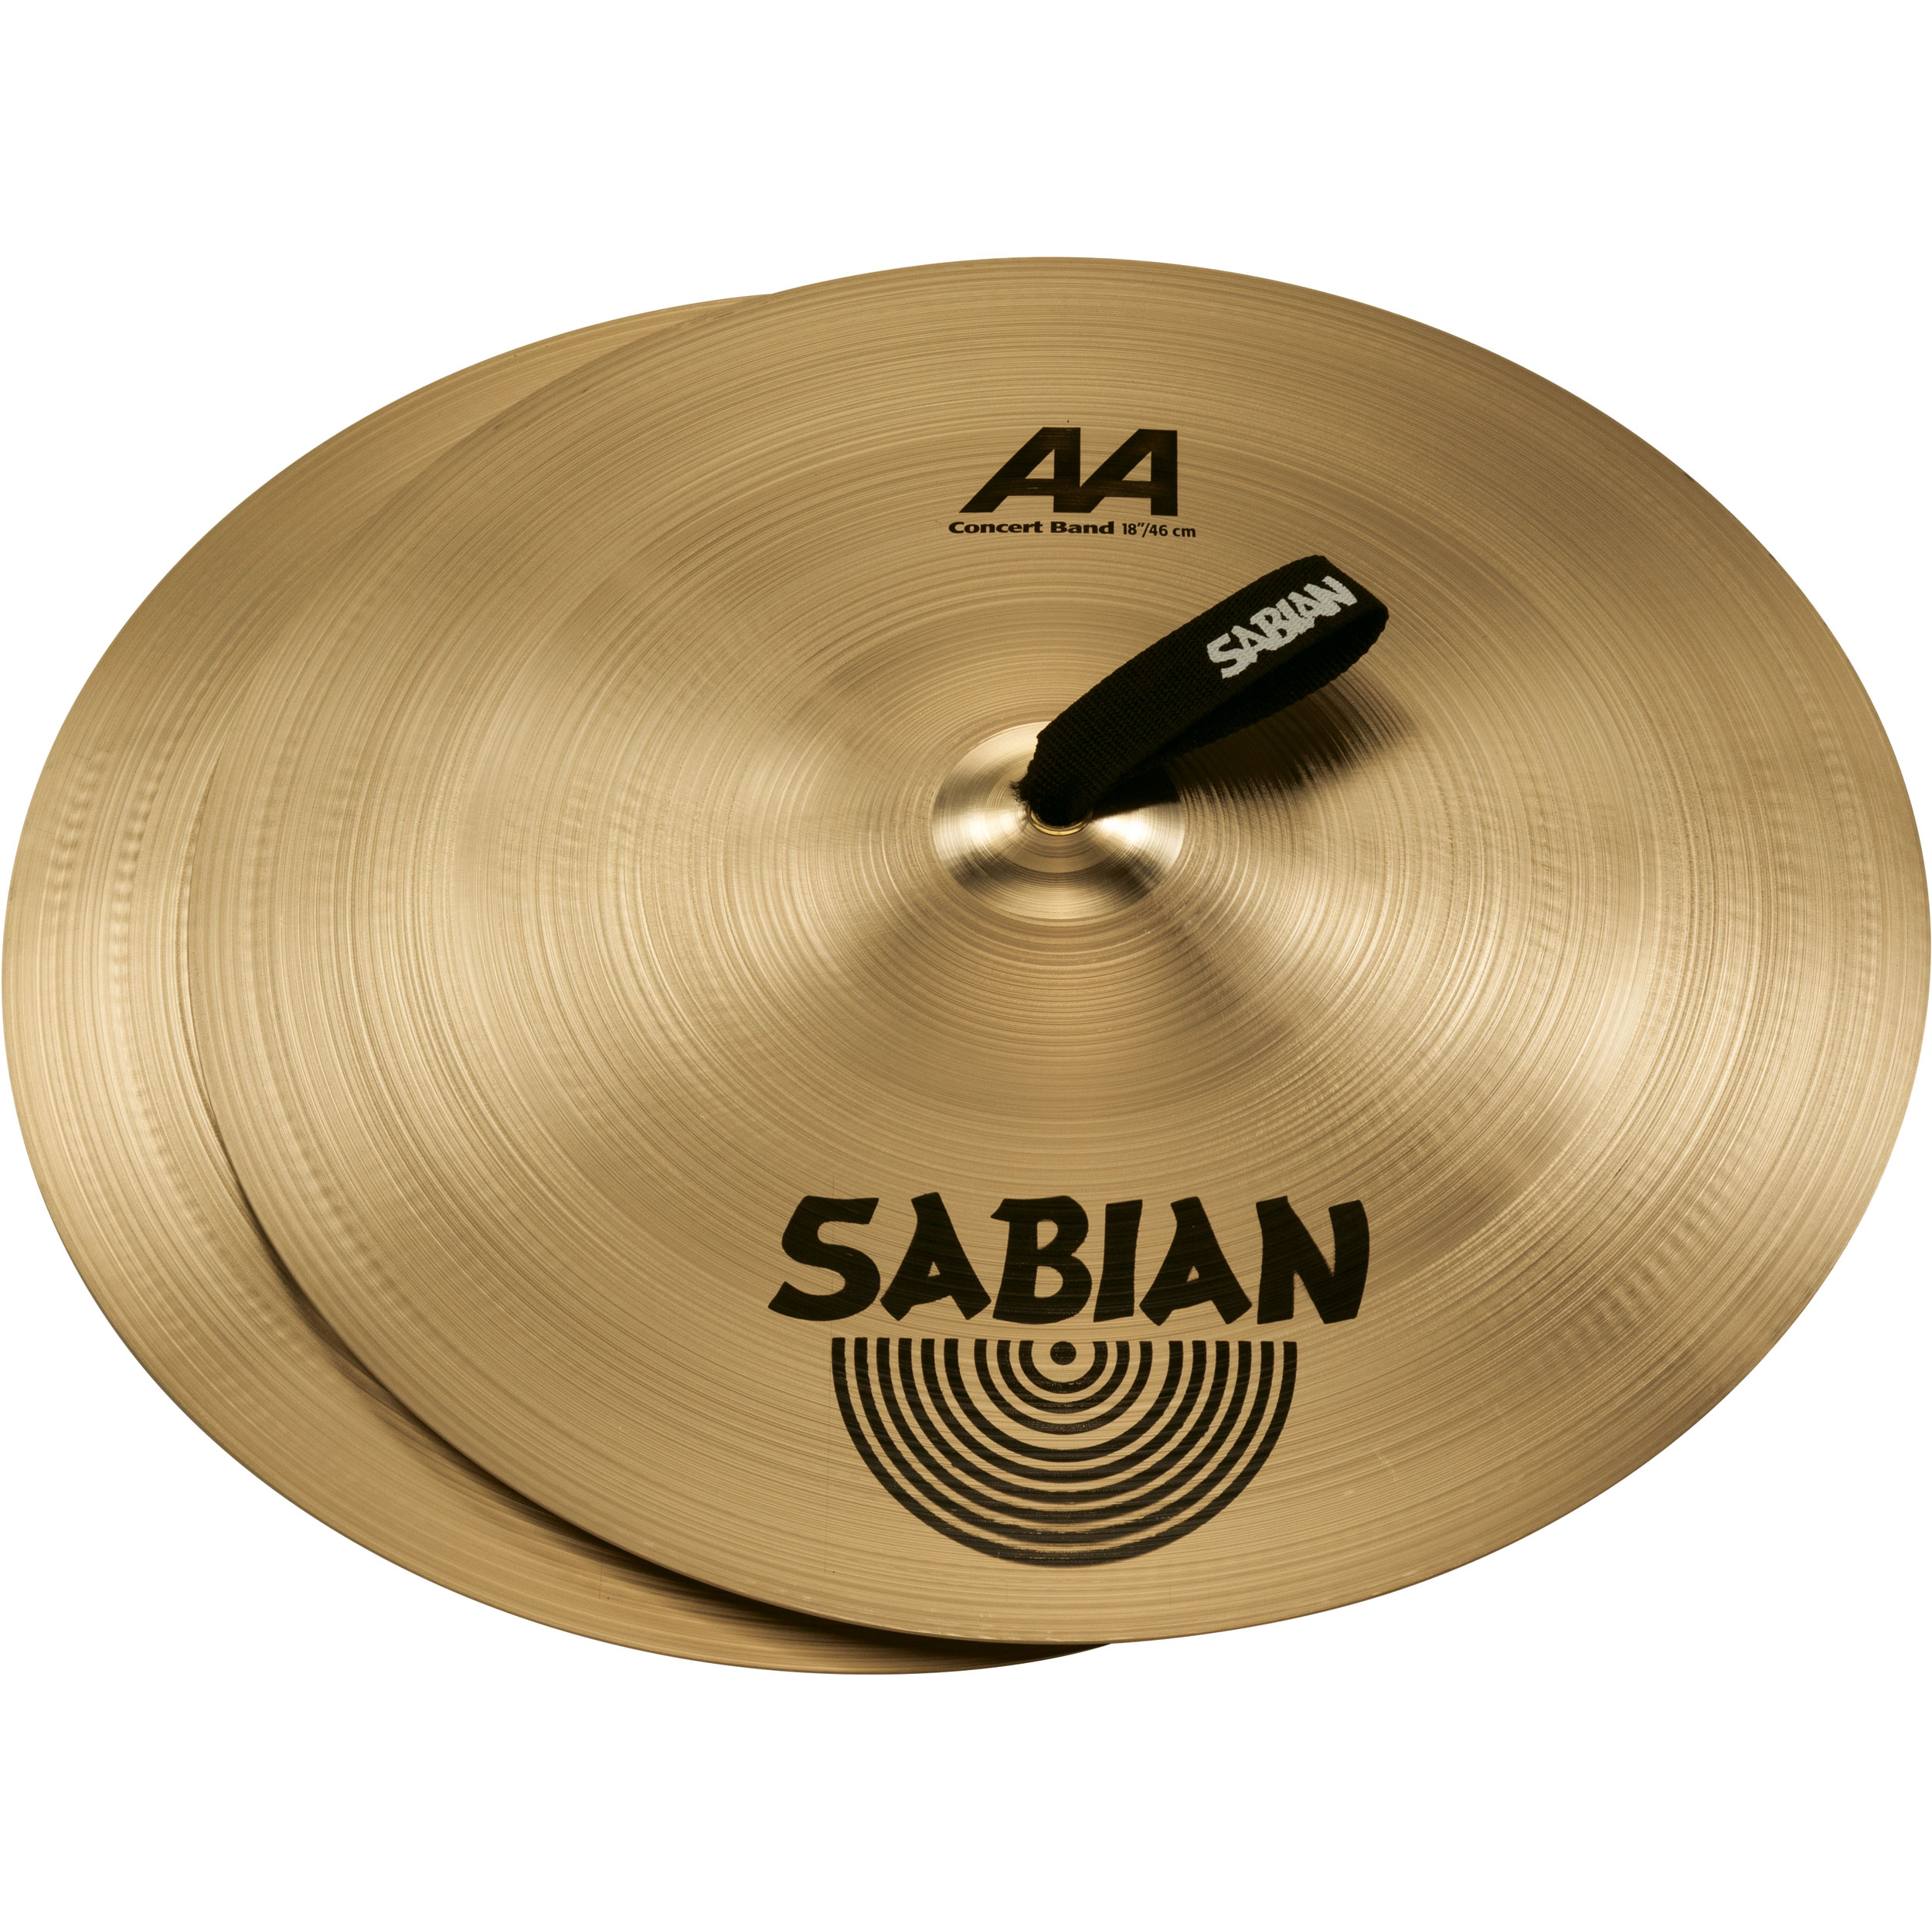 "Sabian 18"" AA Concert Band Crash Cymbal Pair"